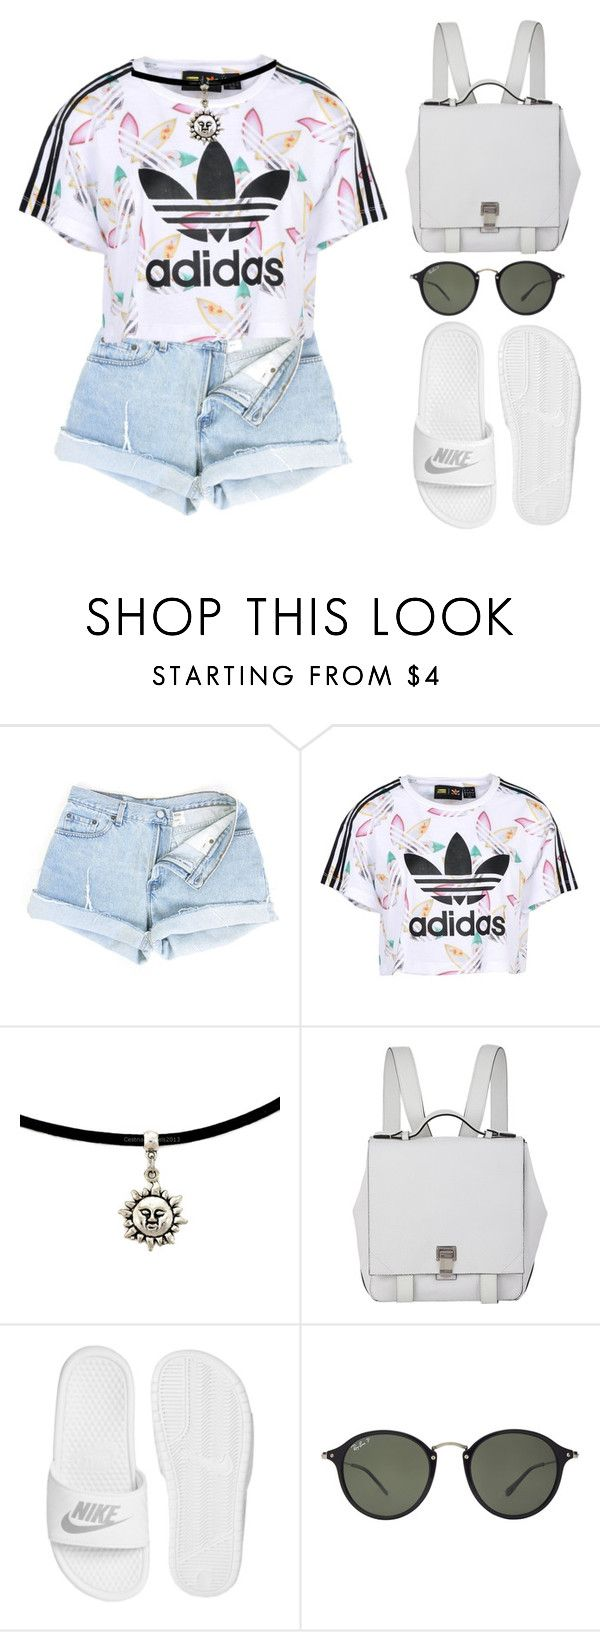 """adidas"" by melanie-pacheco ❤ liked on Polyvore featuring adidas Originals, Proenza Schouler, NIKE and Ray-Ban"